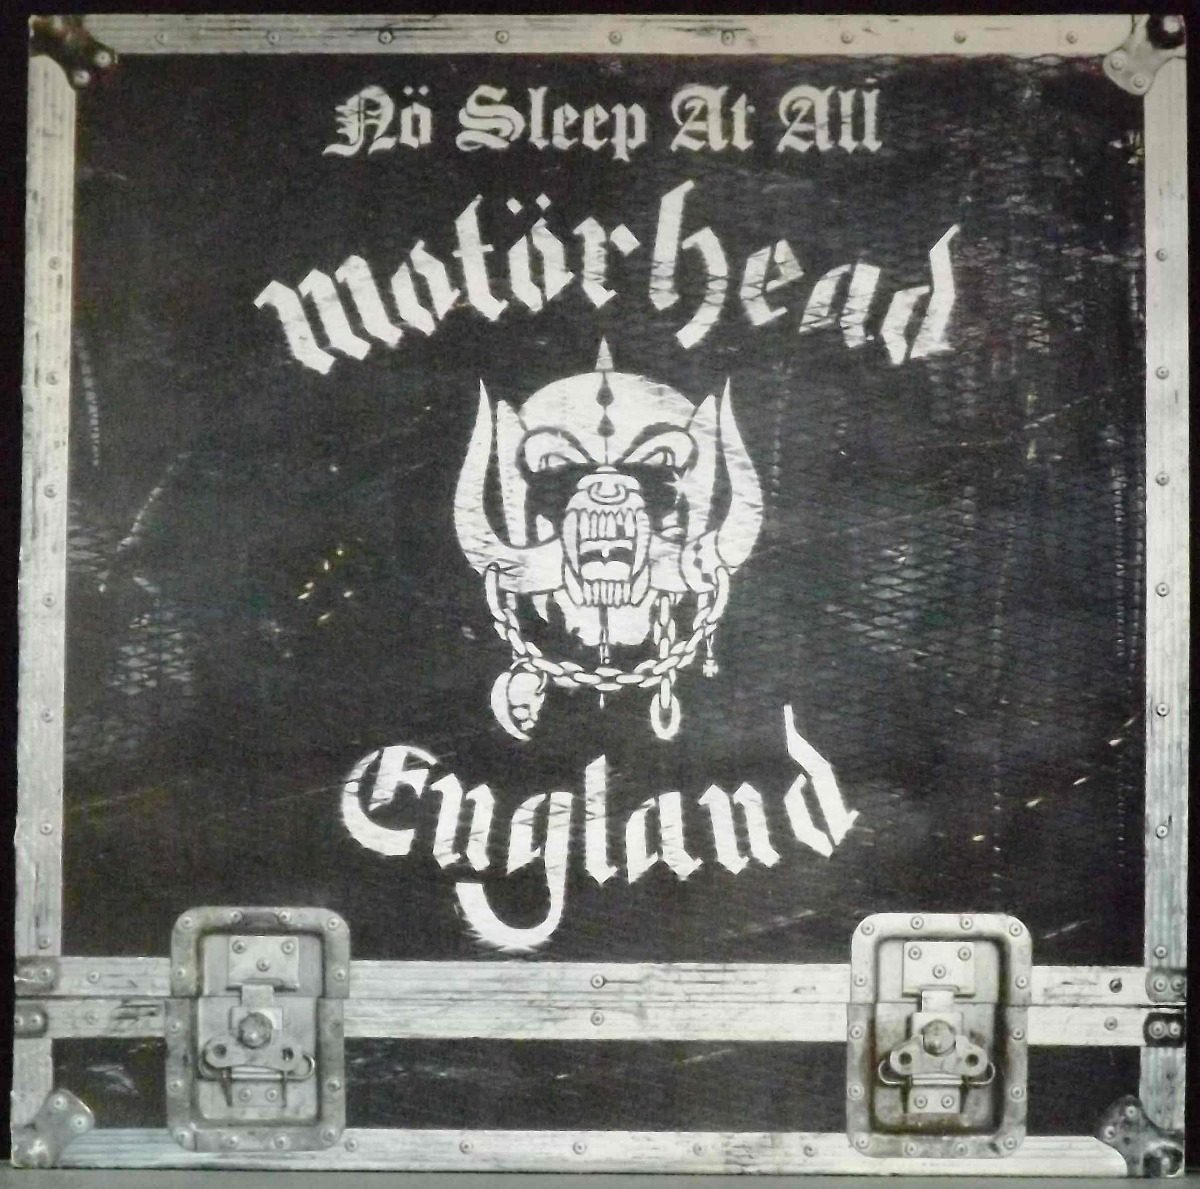 ¿Qué Estás Escuchando? - Página 2 Motorhead-no-sleep-at-all-cd-importado-D_NQ_NP_887685-MLA27140935672_042018-F